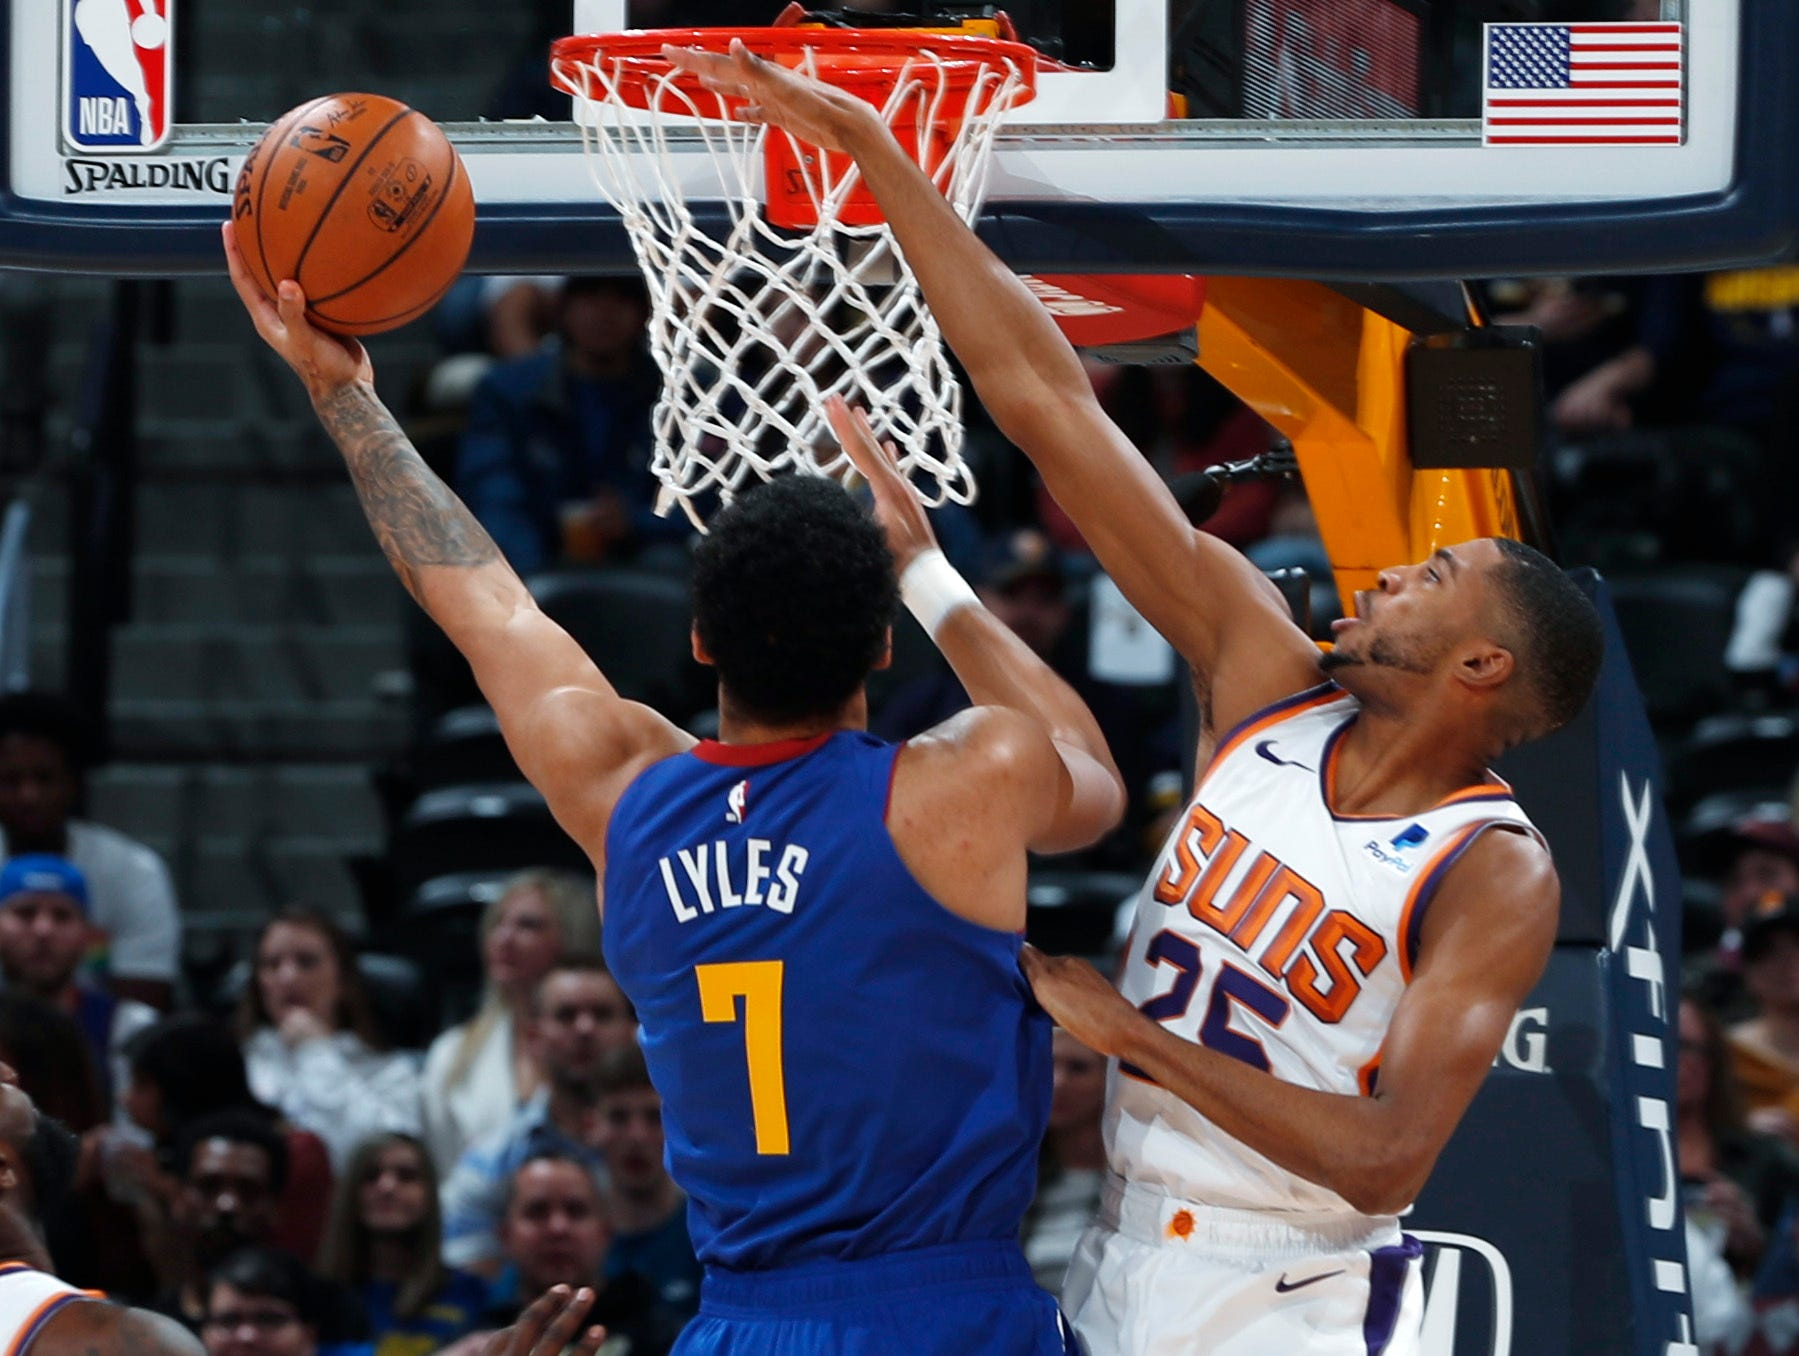 Phoenix Suns forward Mikal Bridges, right, blocks a shot by Denver Nuggets forward Trey Lyles in the first half of an NBA basketball game Friday, Jan. 25, 2019, in Denver. (AP Photo/David Zalubowski)